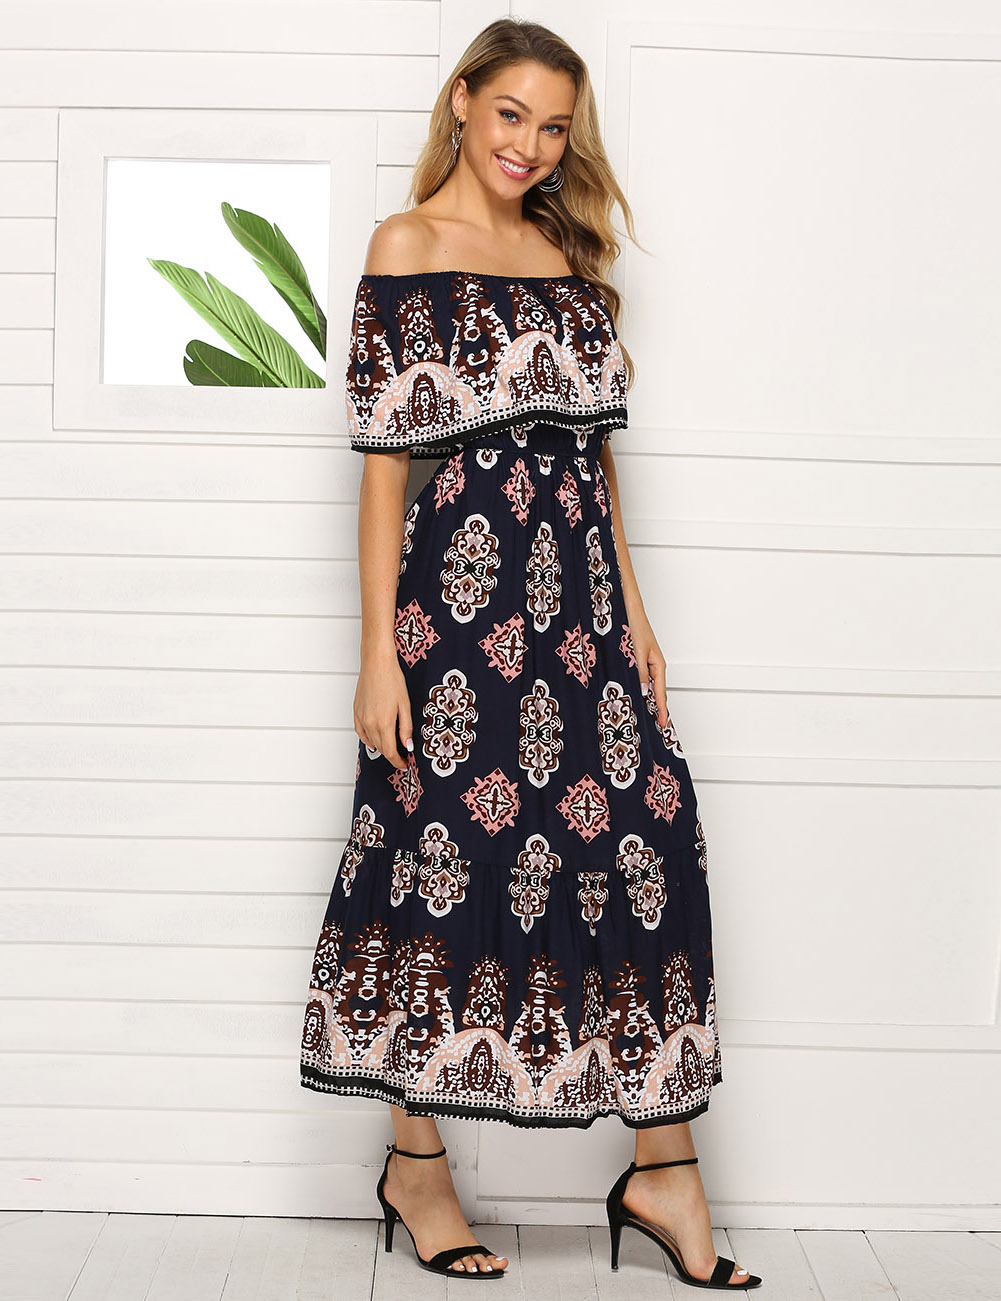 //cdn.affectcloud.com/feelingirldress/upload/imgs/2019-05-15/VZ190100-M06/VZ190100-M06-5.jpg